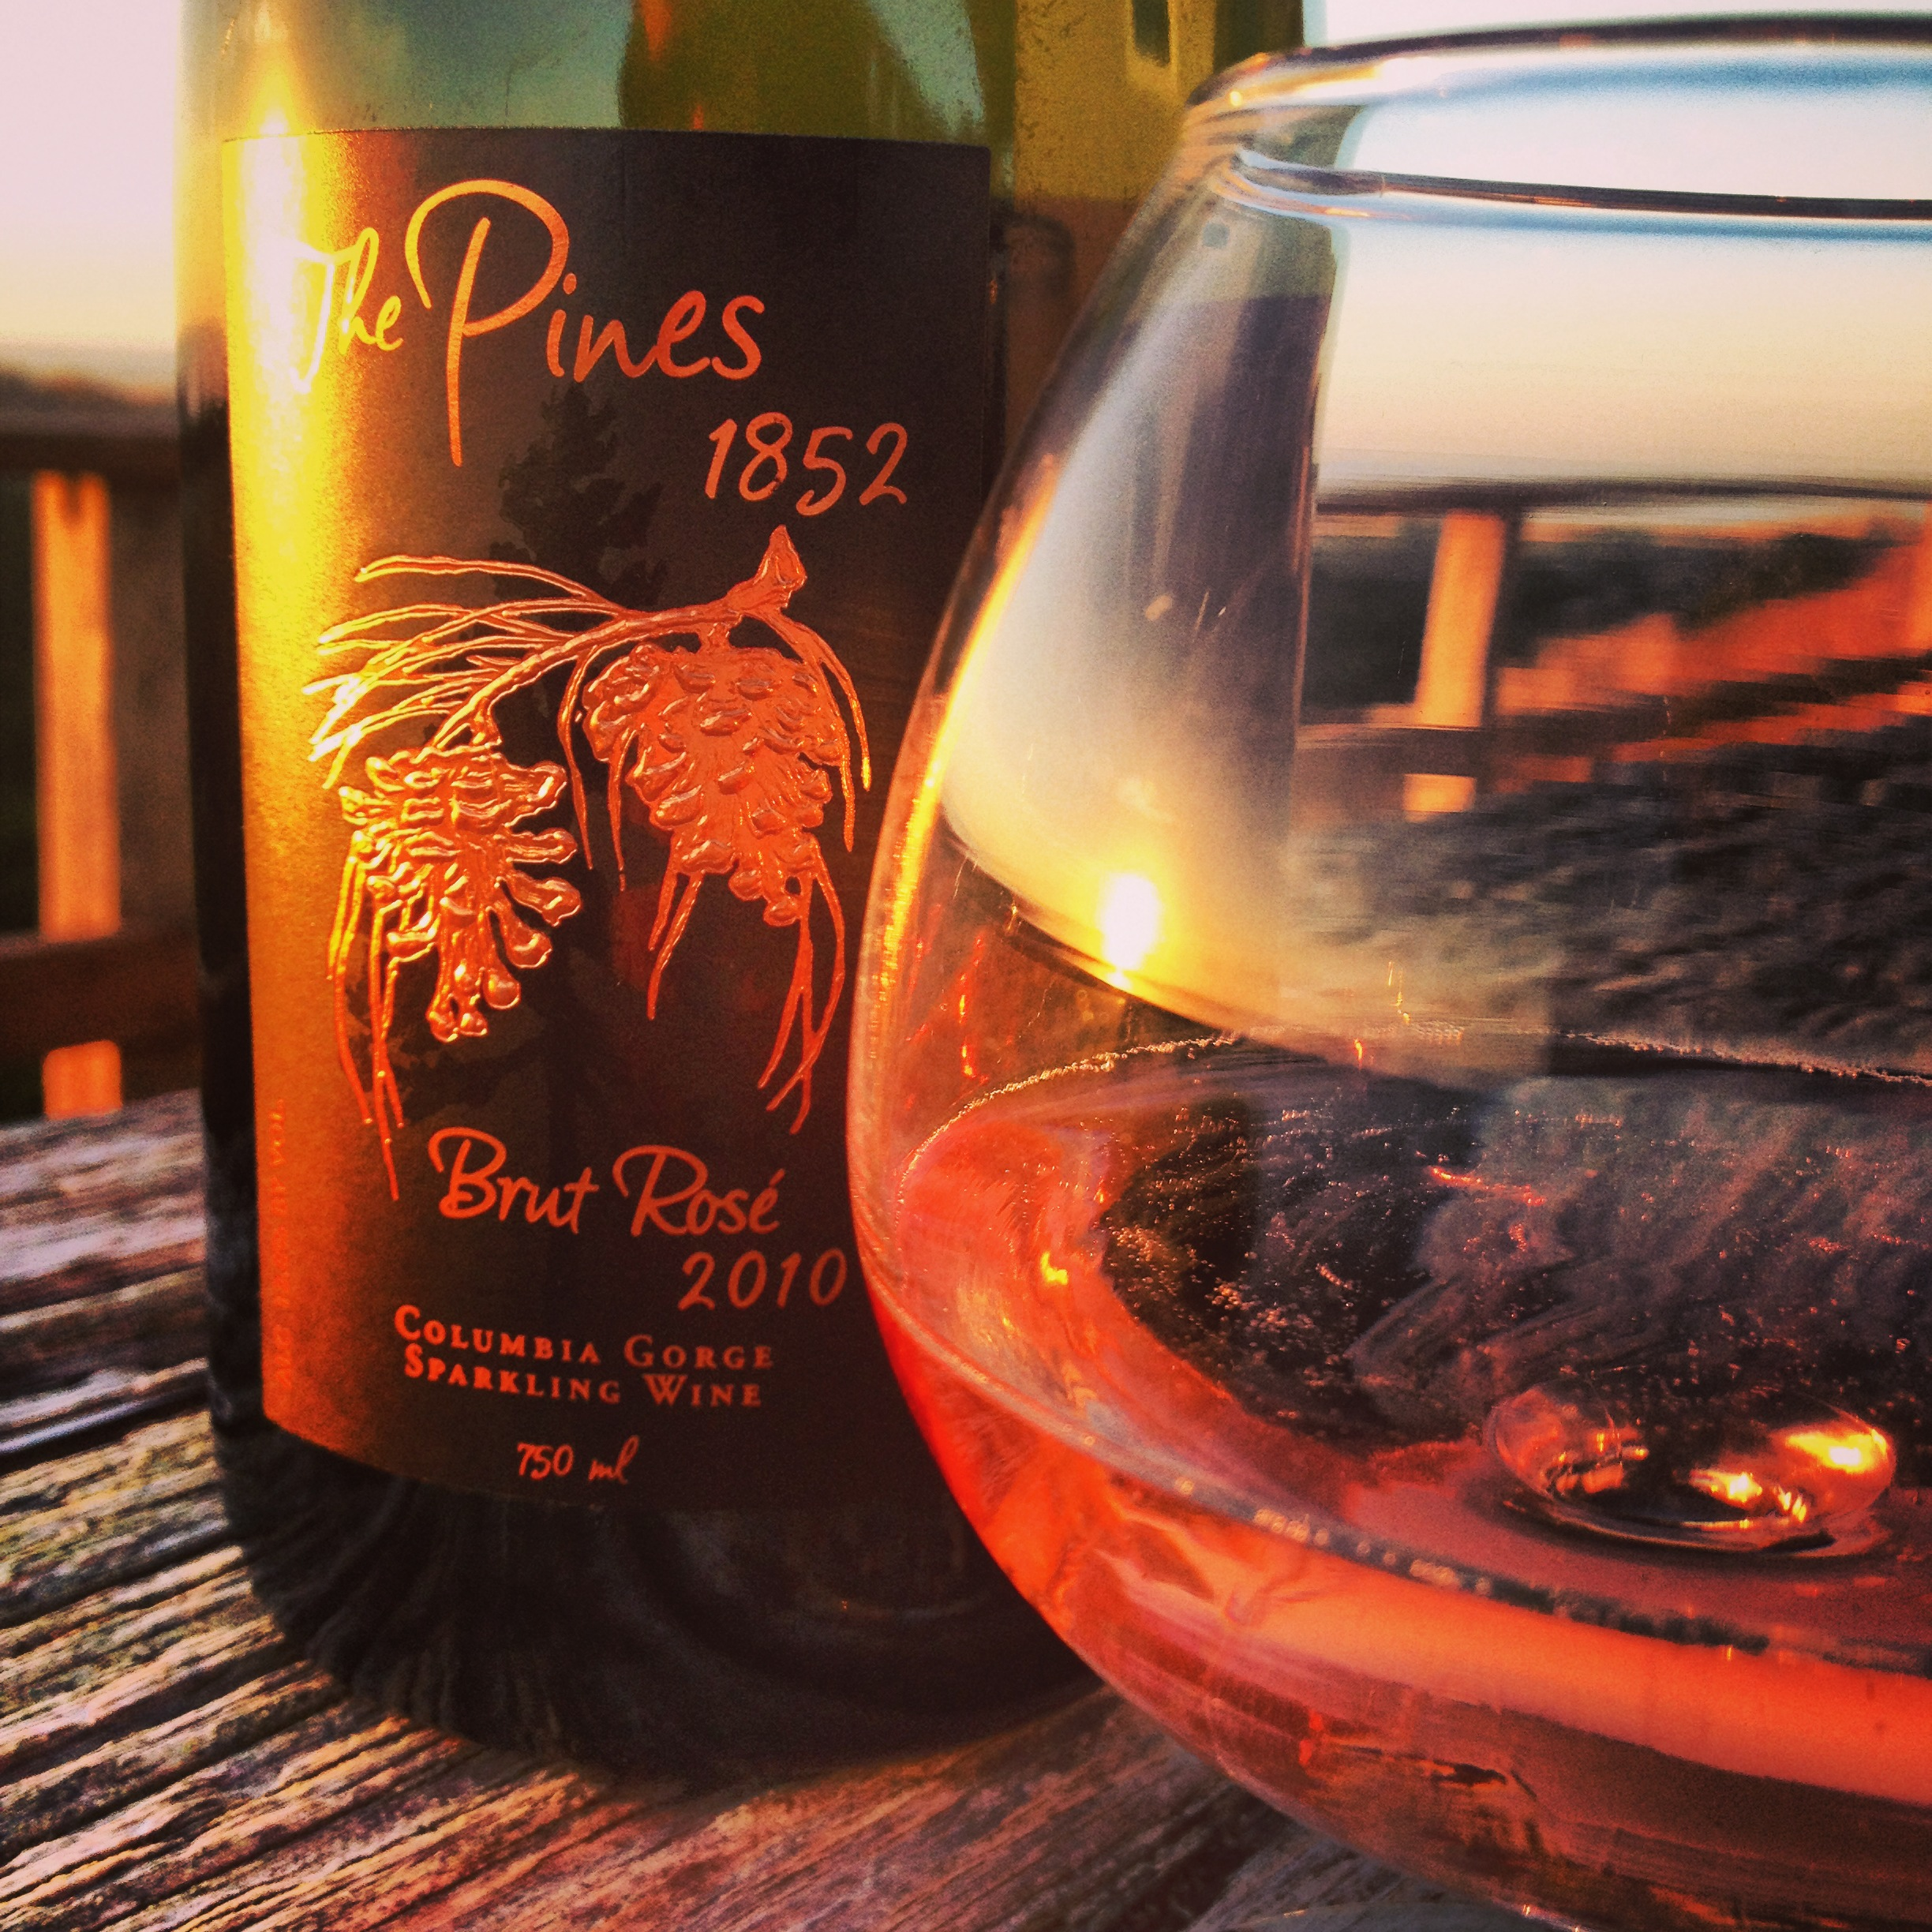 Pair This: The Pines 1852 Brut Rosé with a Pacific Coast Sunset